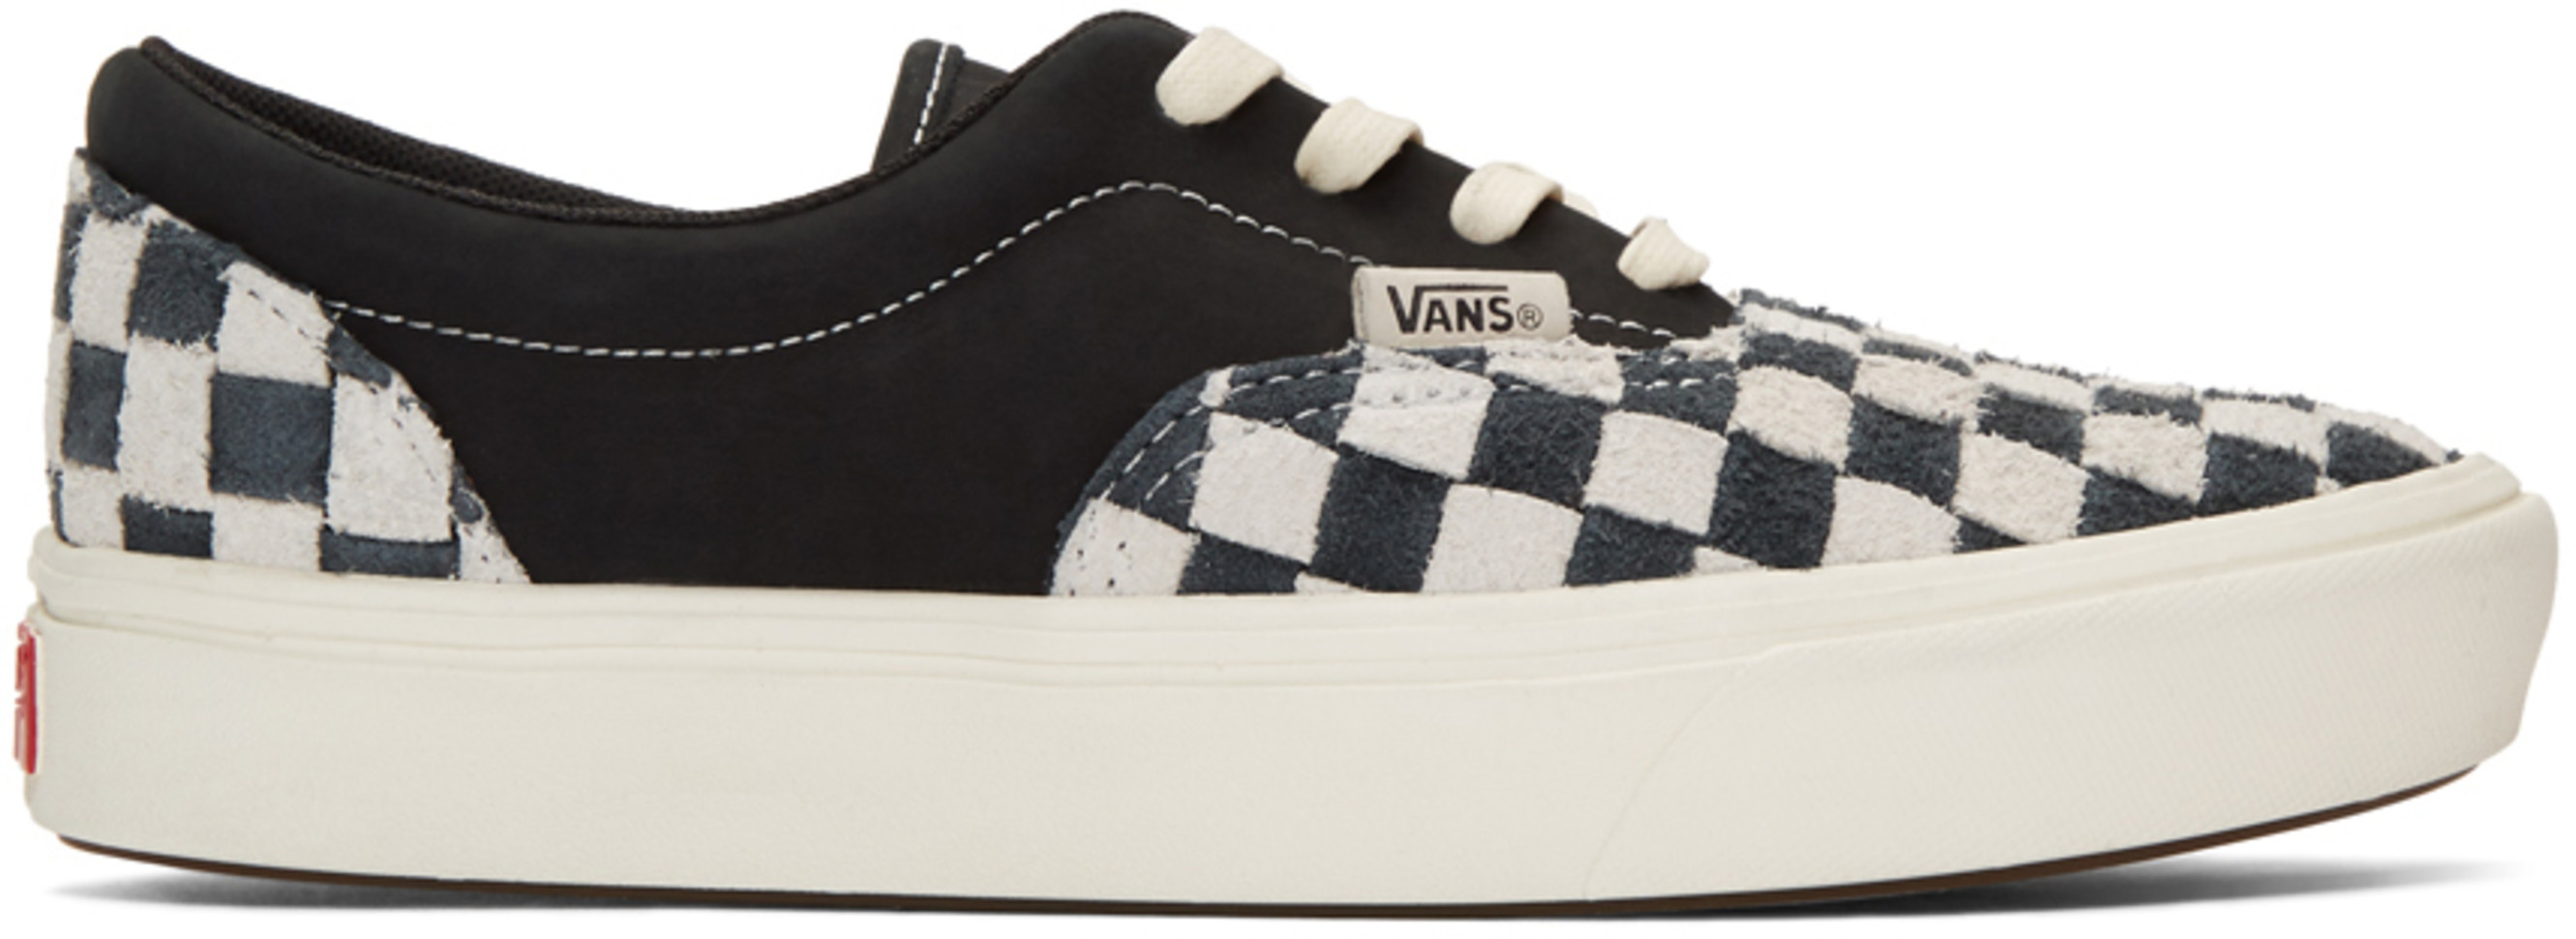 Vans for Men SS19 Collection  501cc881b